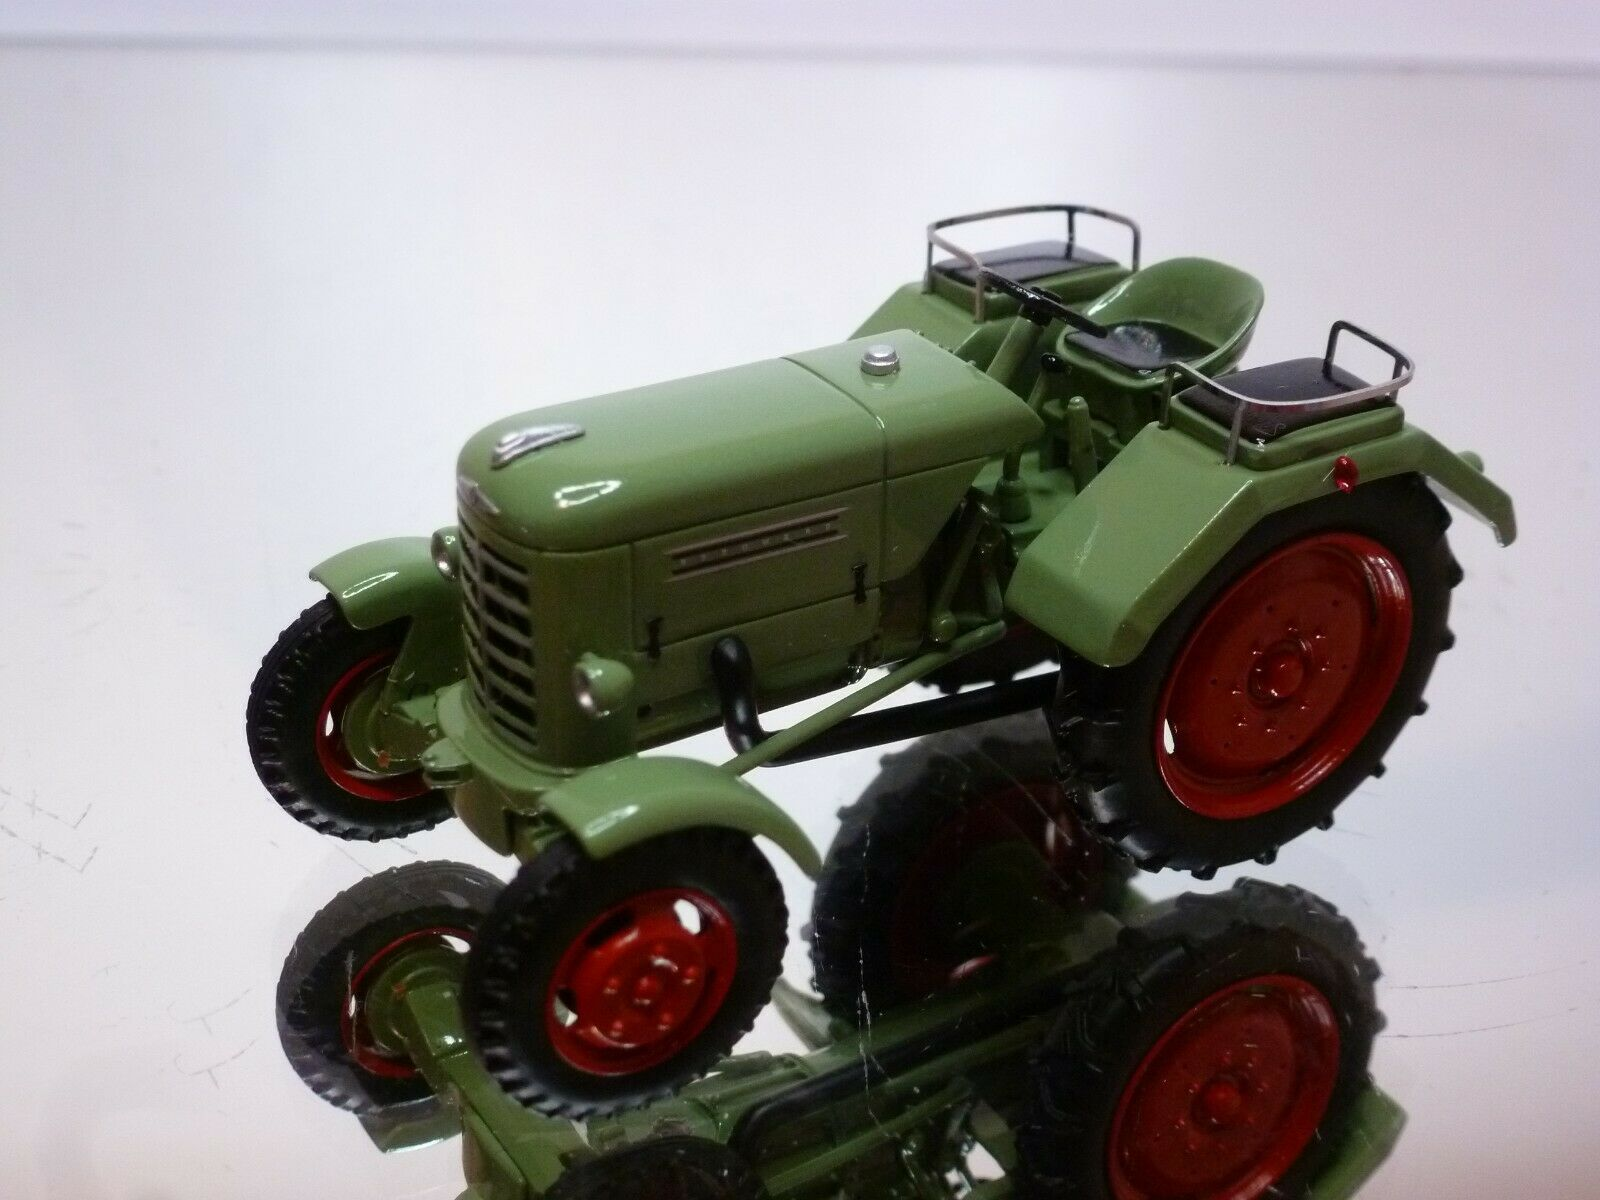 SCHUCO BORGWARD DIESEL TRACTOR - verde 1 43 - VERY GOOD